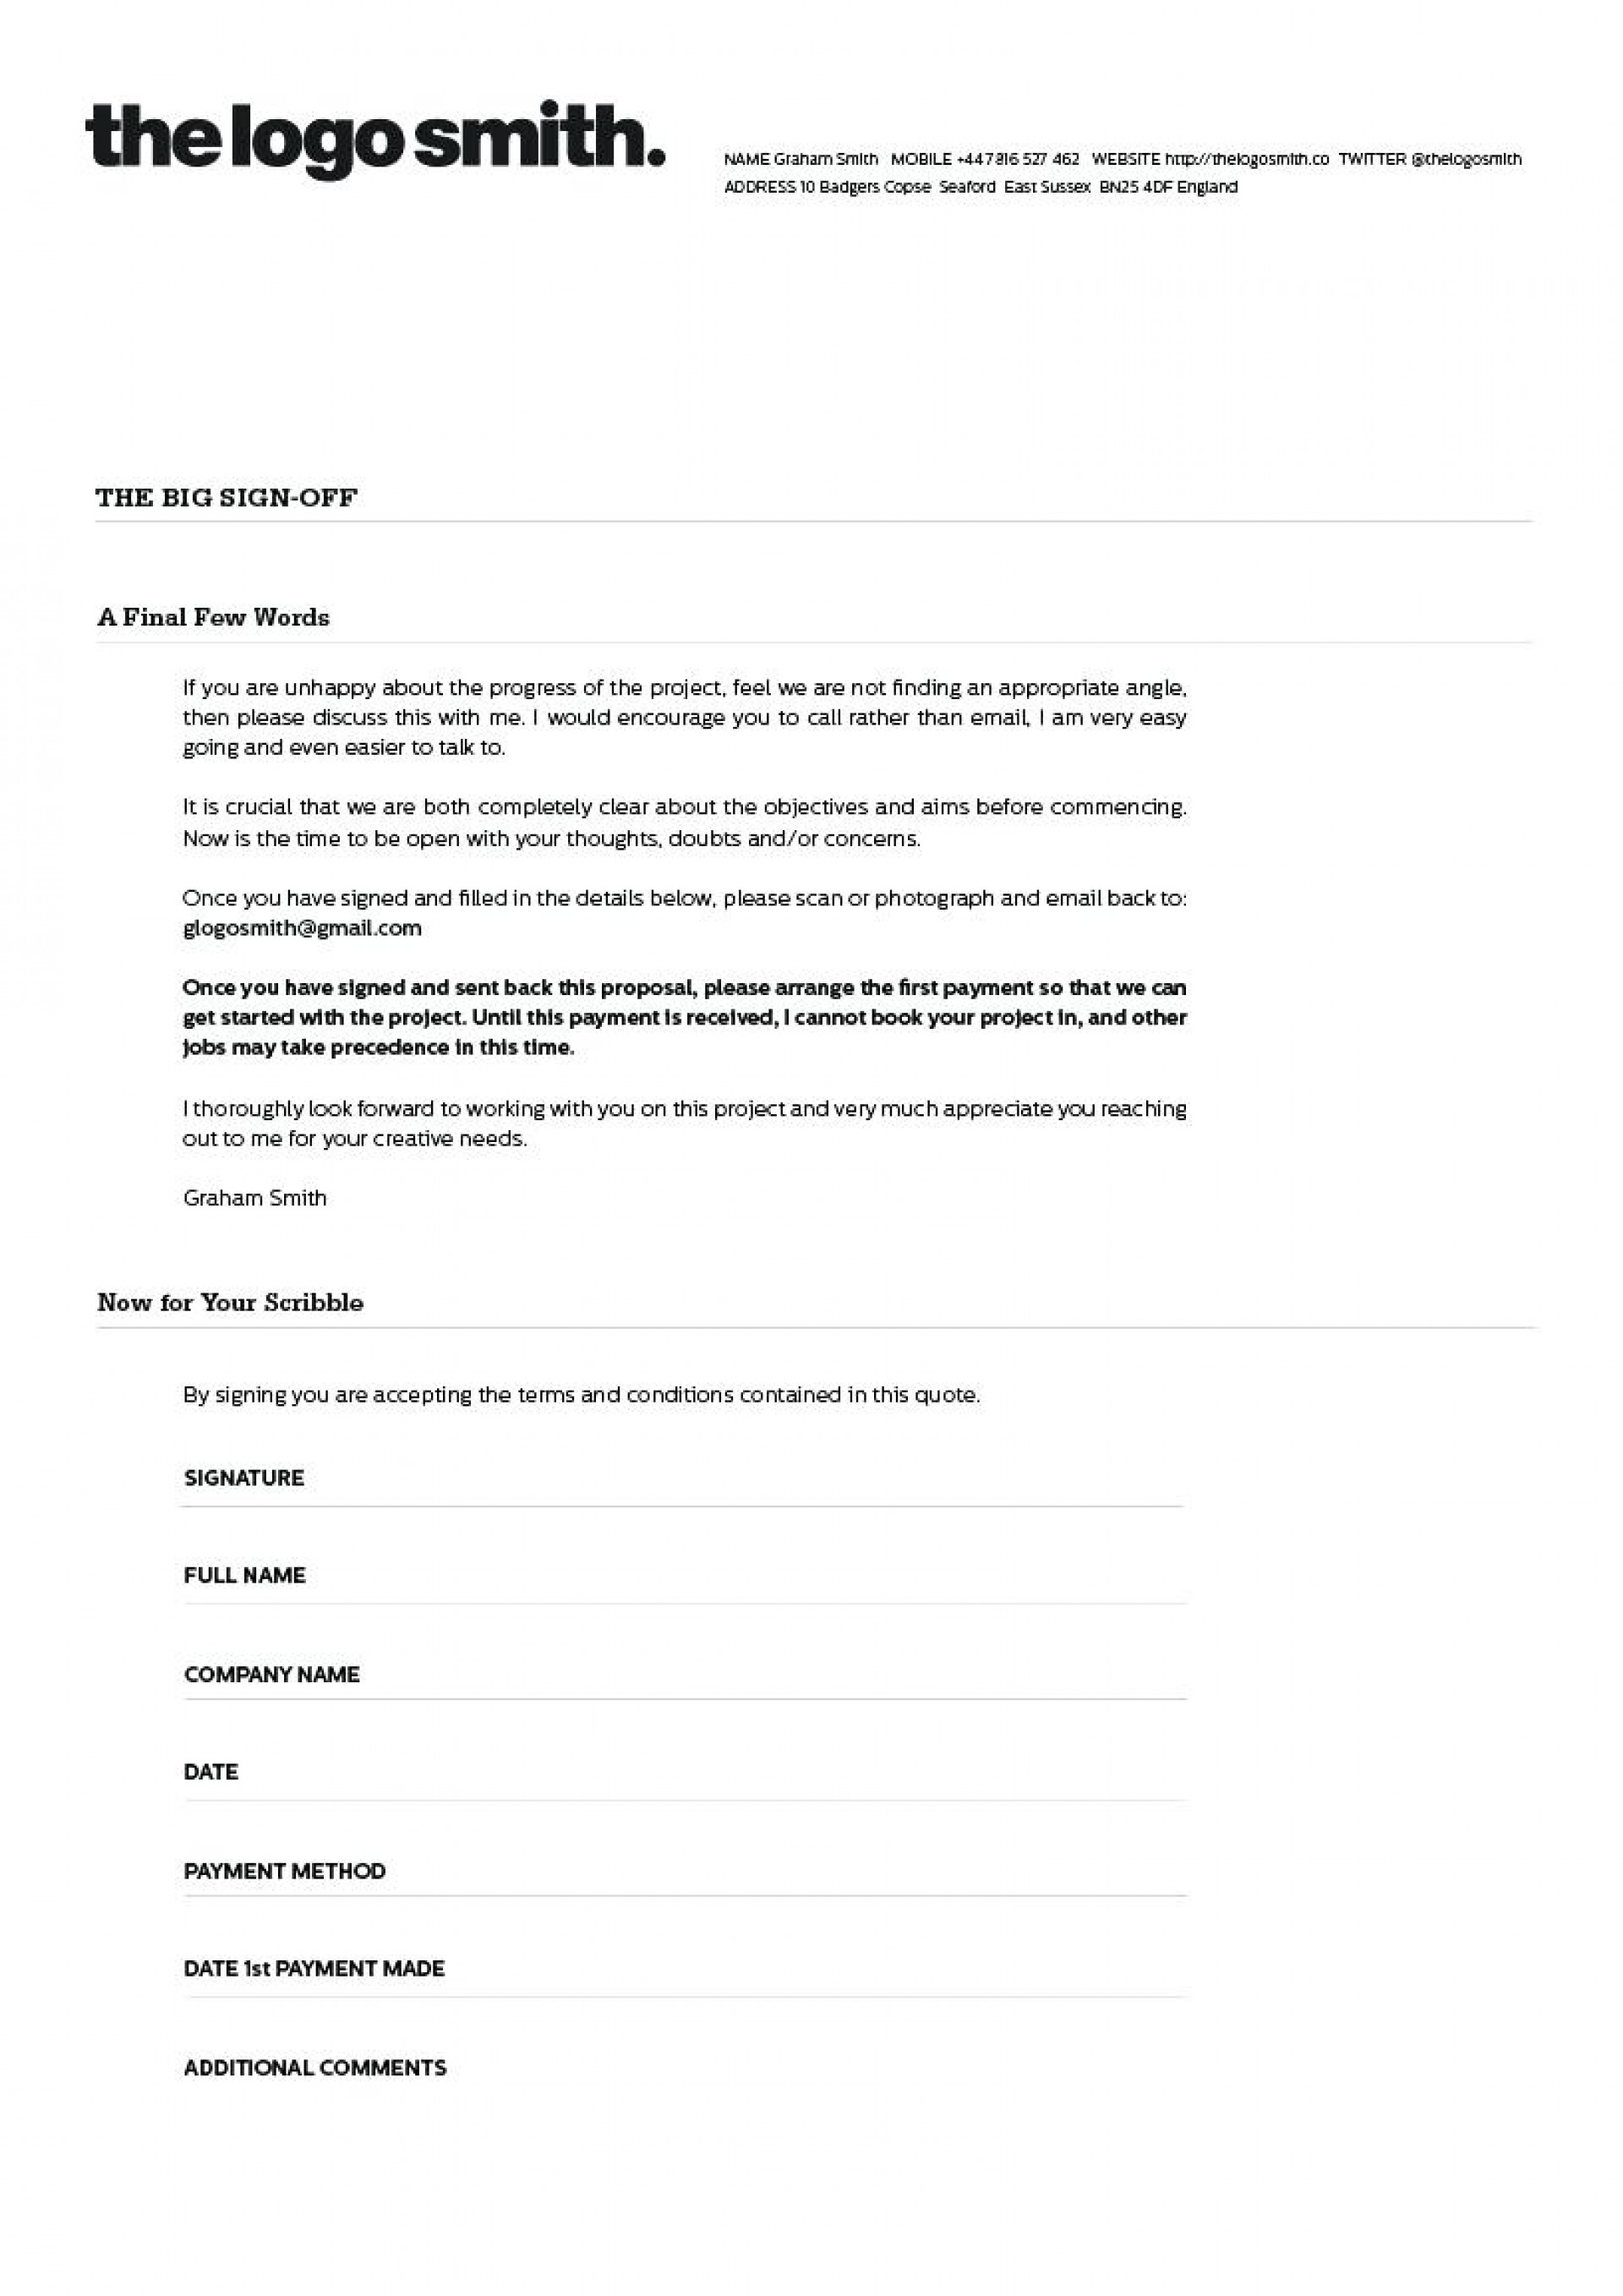 031 Freelance Design Contract Template Image2 Graphic.